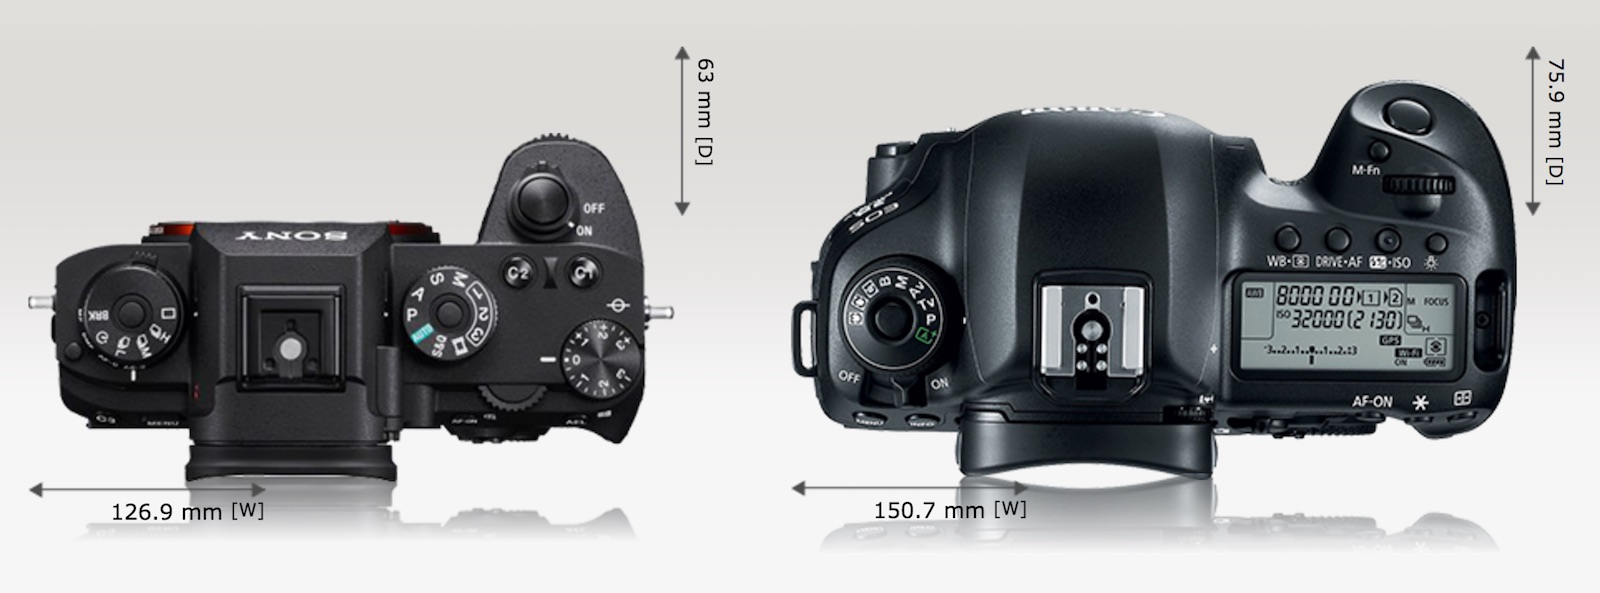 Thrifty Battery Size Sony Vs Canon Mark Mark Ii Sony A7 Vs A7ii Vs A7rii Sony A7 Vs A7ii Comparison And When You Put It Next To Massive Canon Mark Lookslike A We Compare Sizes dpreview Sony A7 Vs A7ii